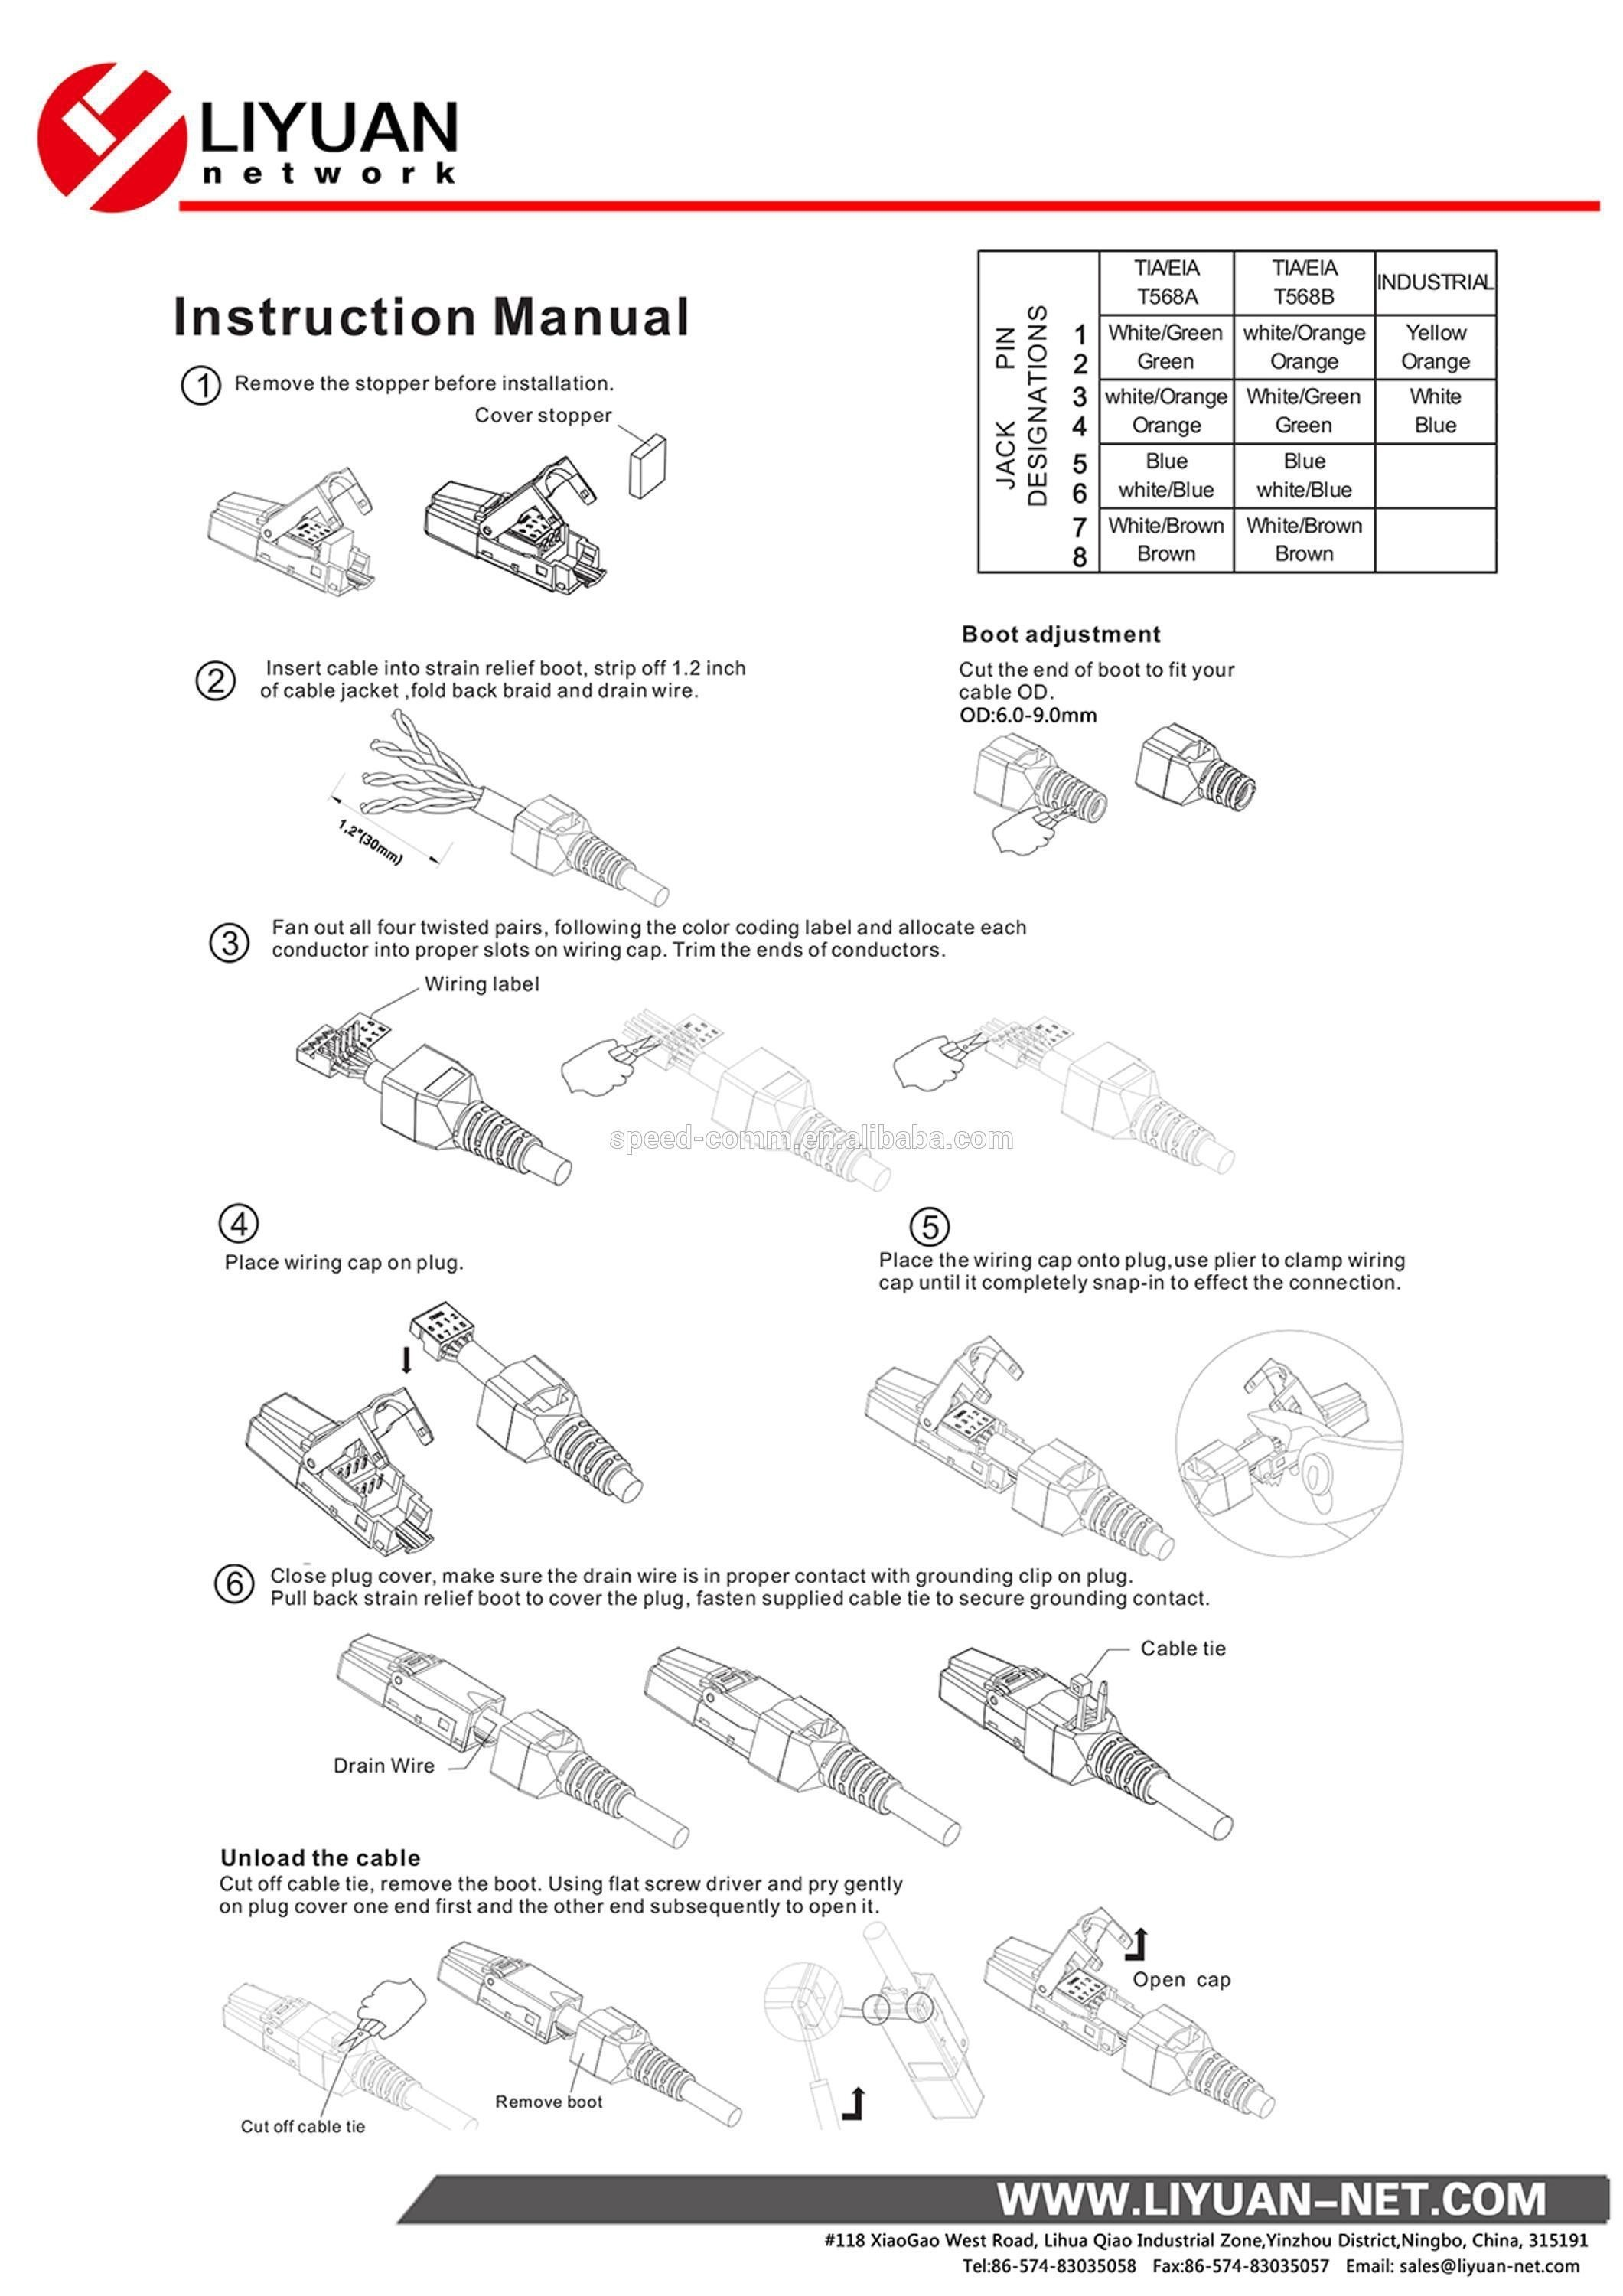 Wiring Diagram for A Cat5 Cable Inspirationa Cable Wire Diagram Best Cat5e Wire Diagram New Ethernet